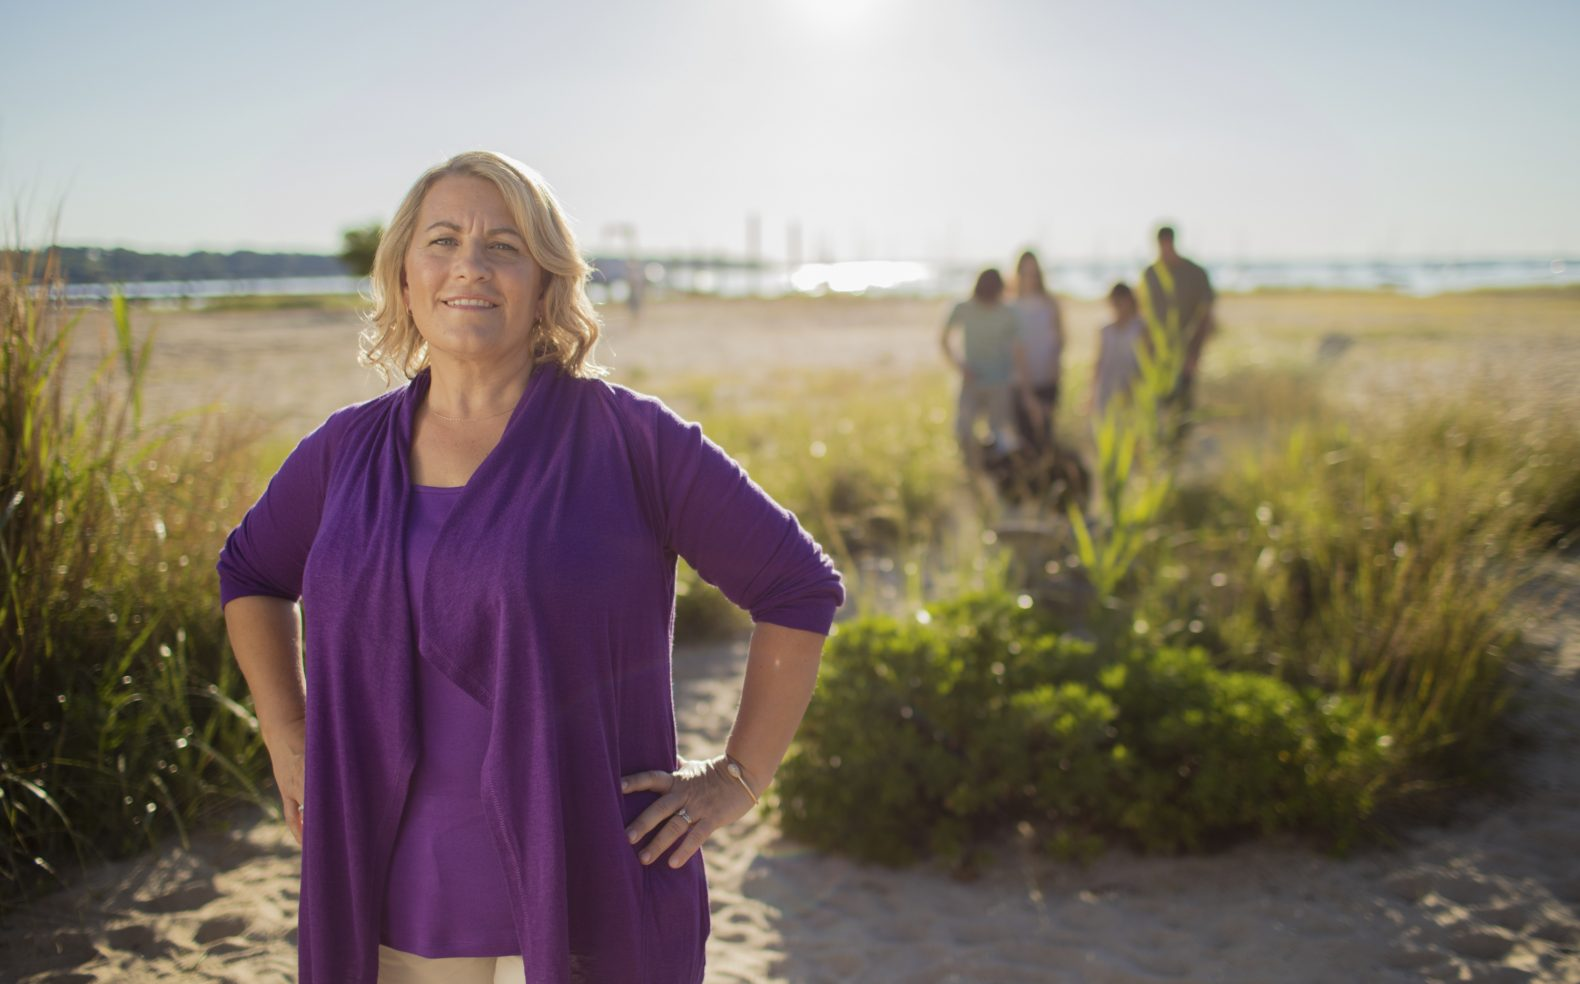 A middle-aged woman in a purple blouse stands on a beach with her hands on her hips, her family walks on sand in the background.